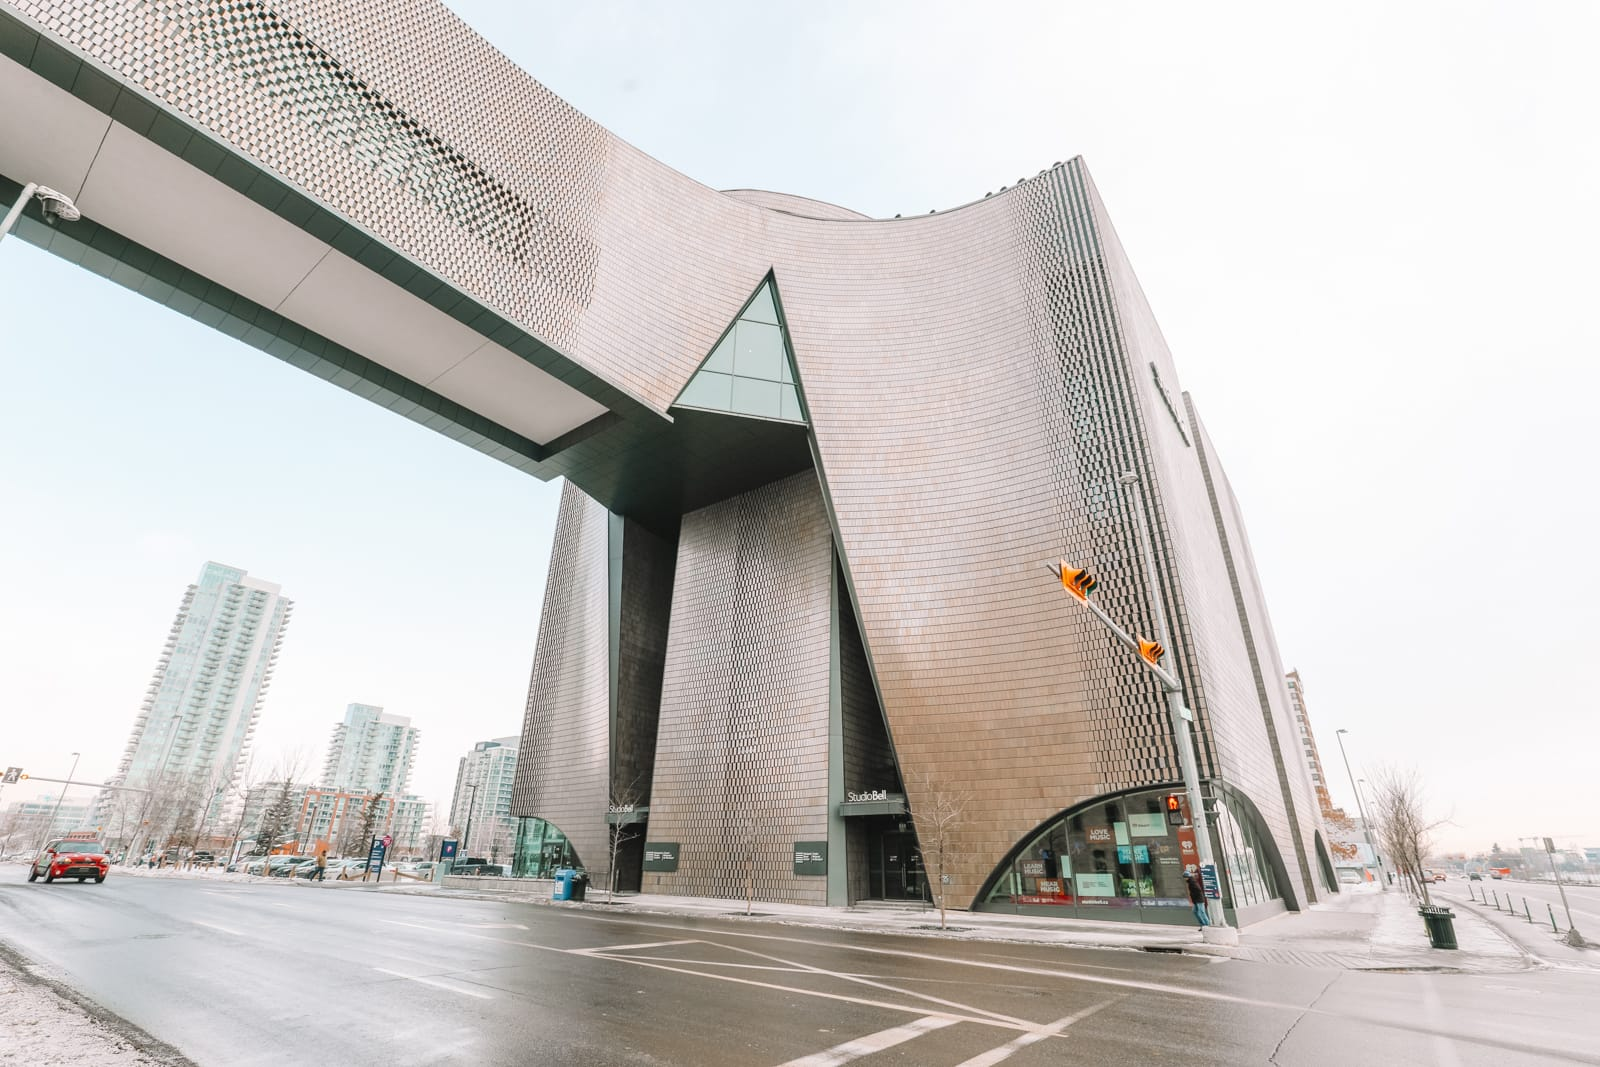 Finding Calgary's Architectural Masterpieces - Studio Bell And The Central Library (18)